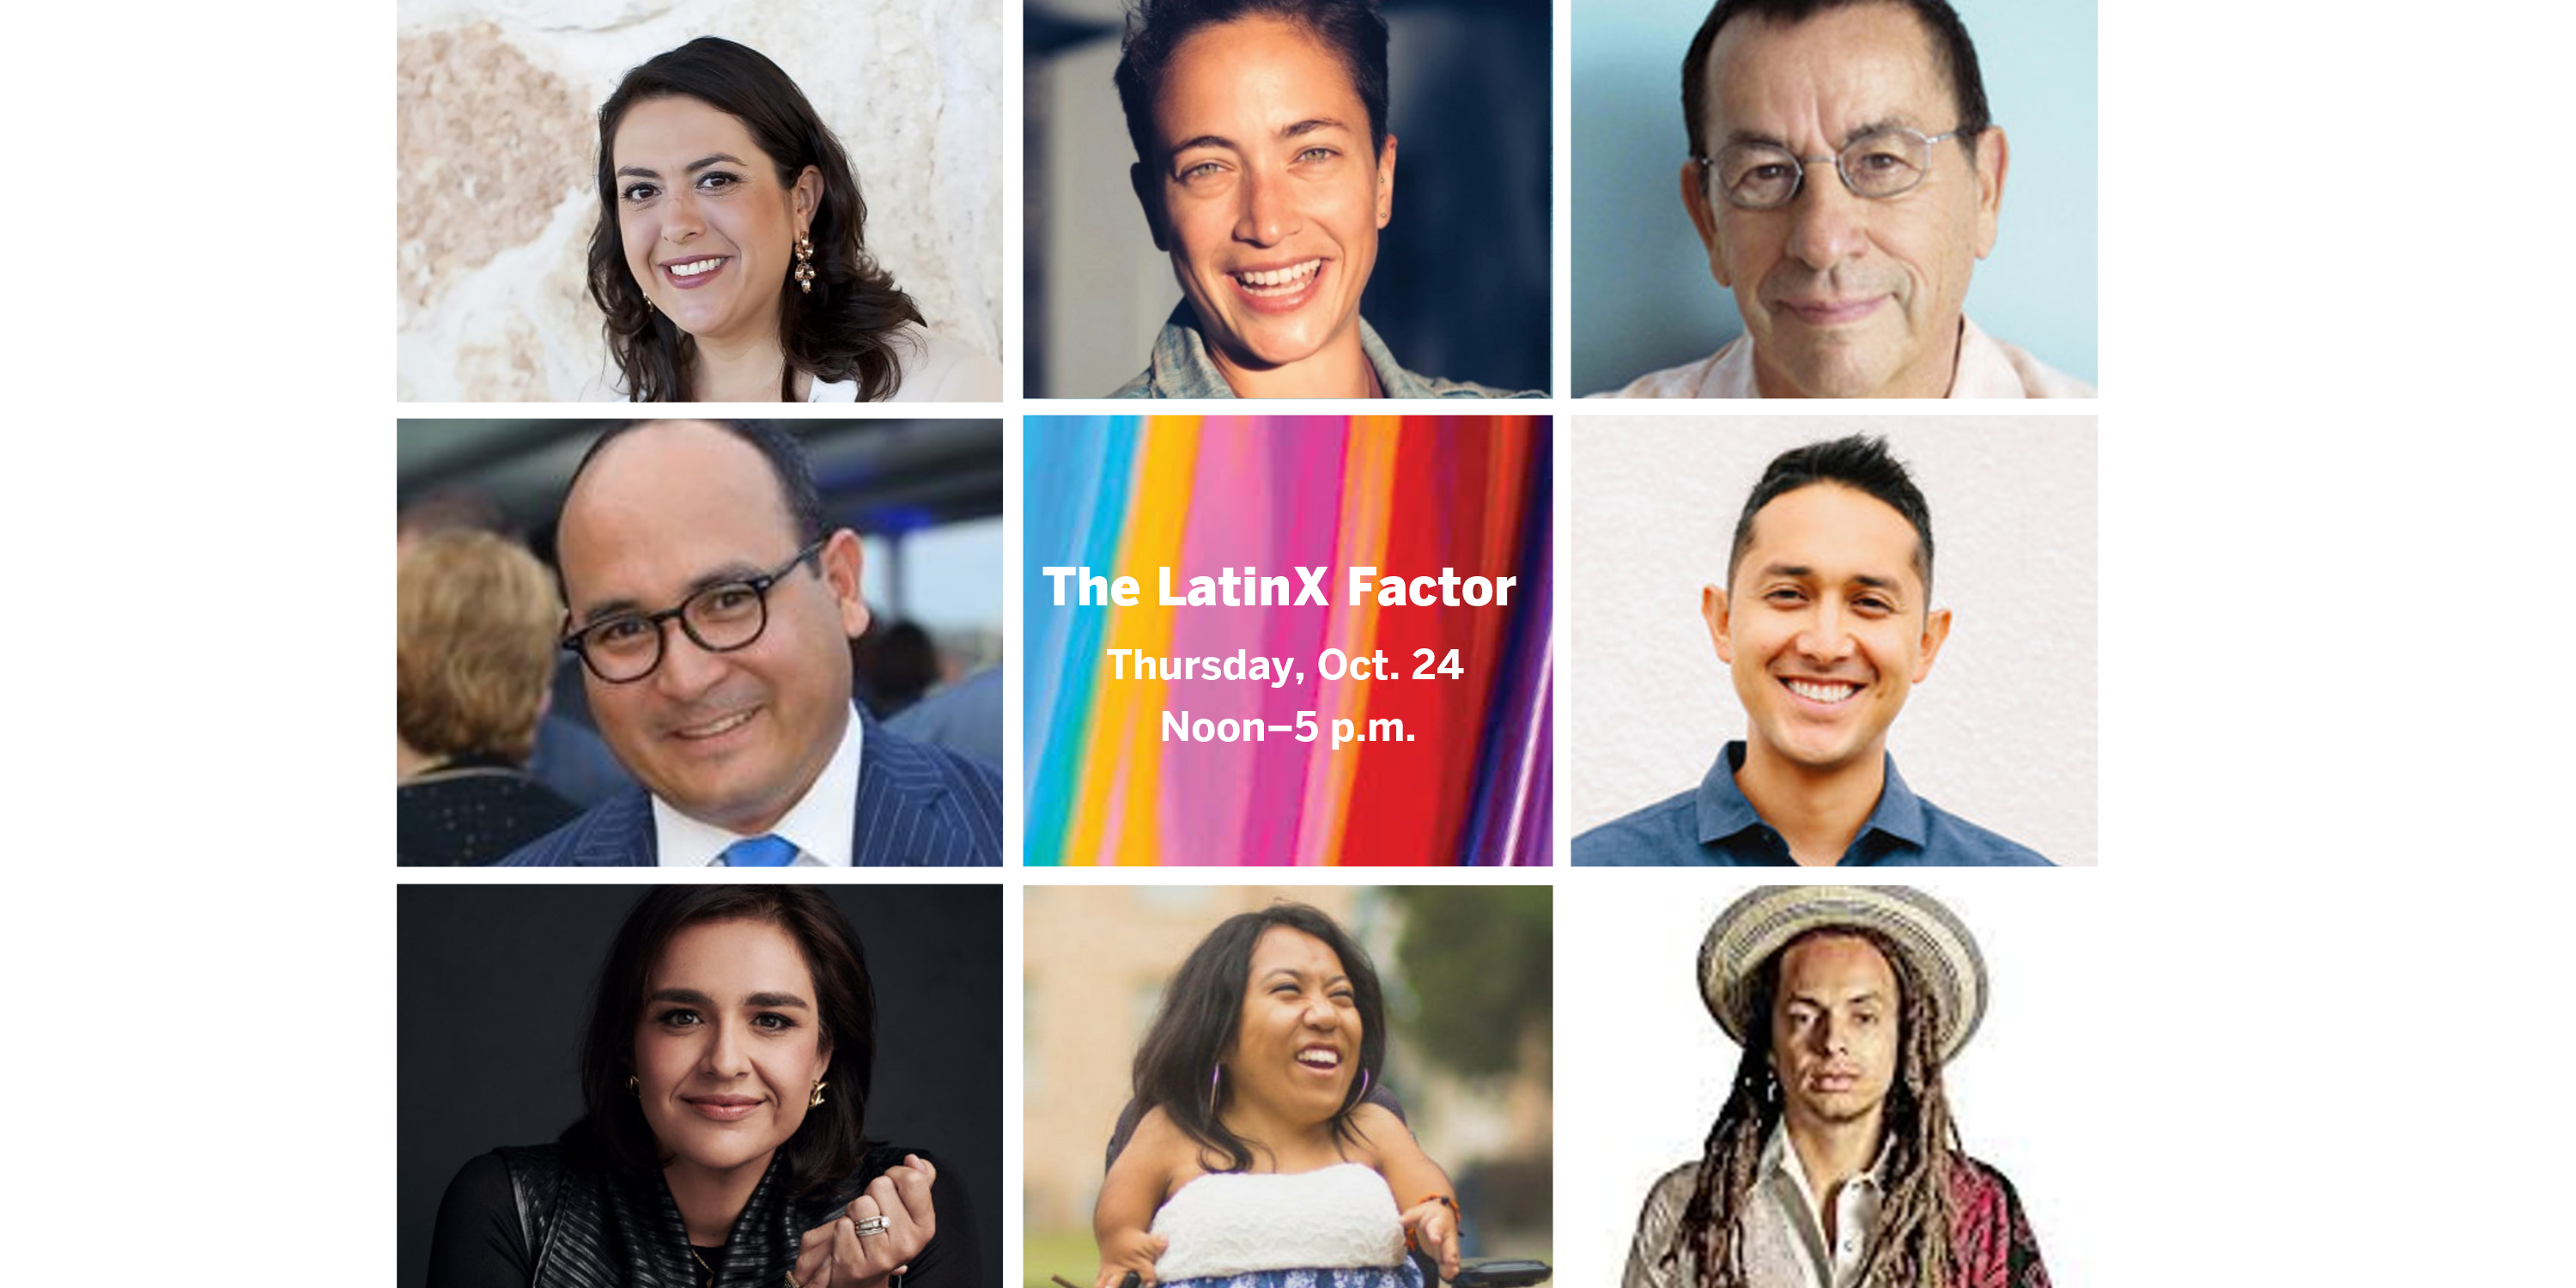 Participants in the LatinX Factor conference